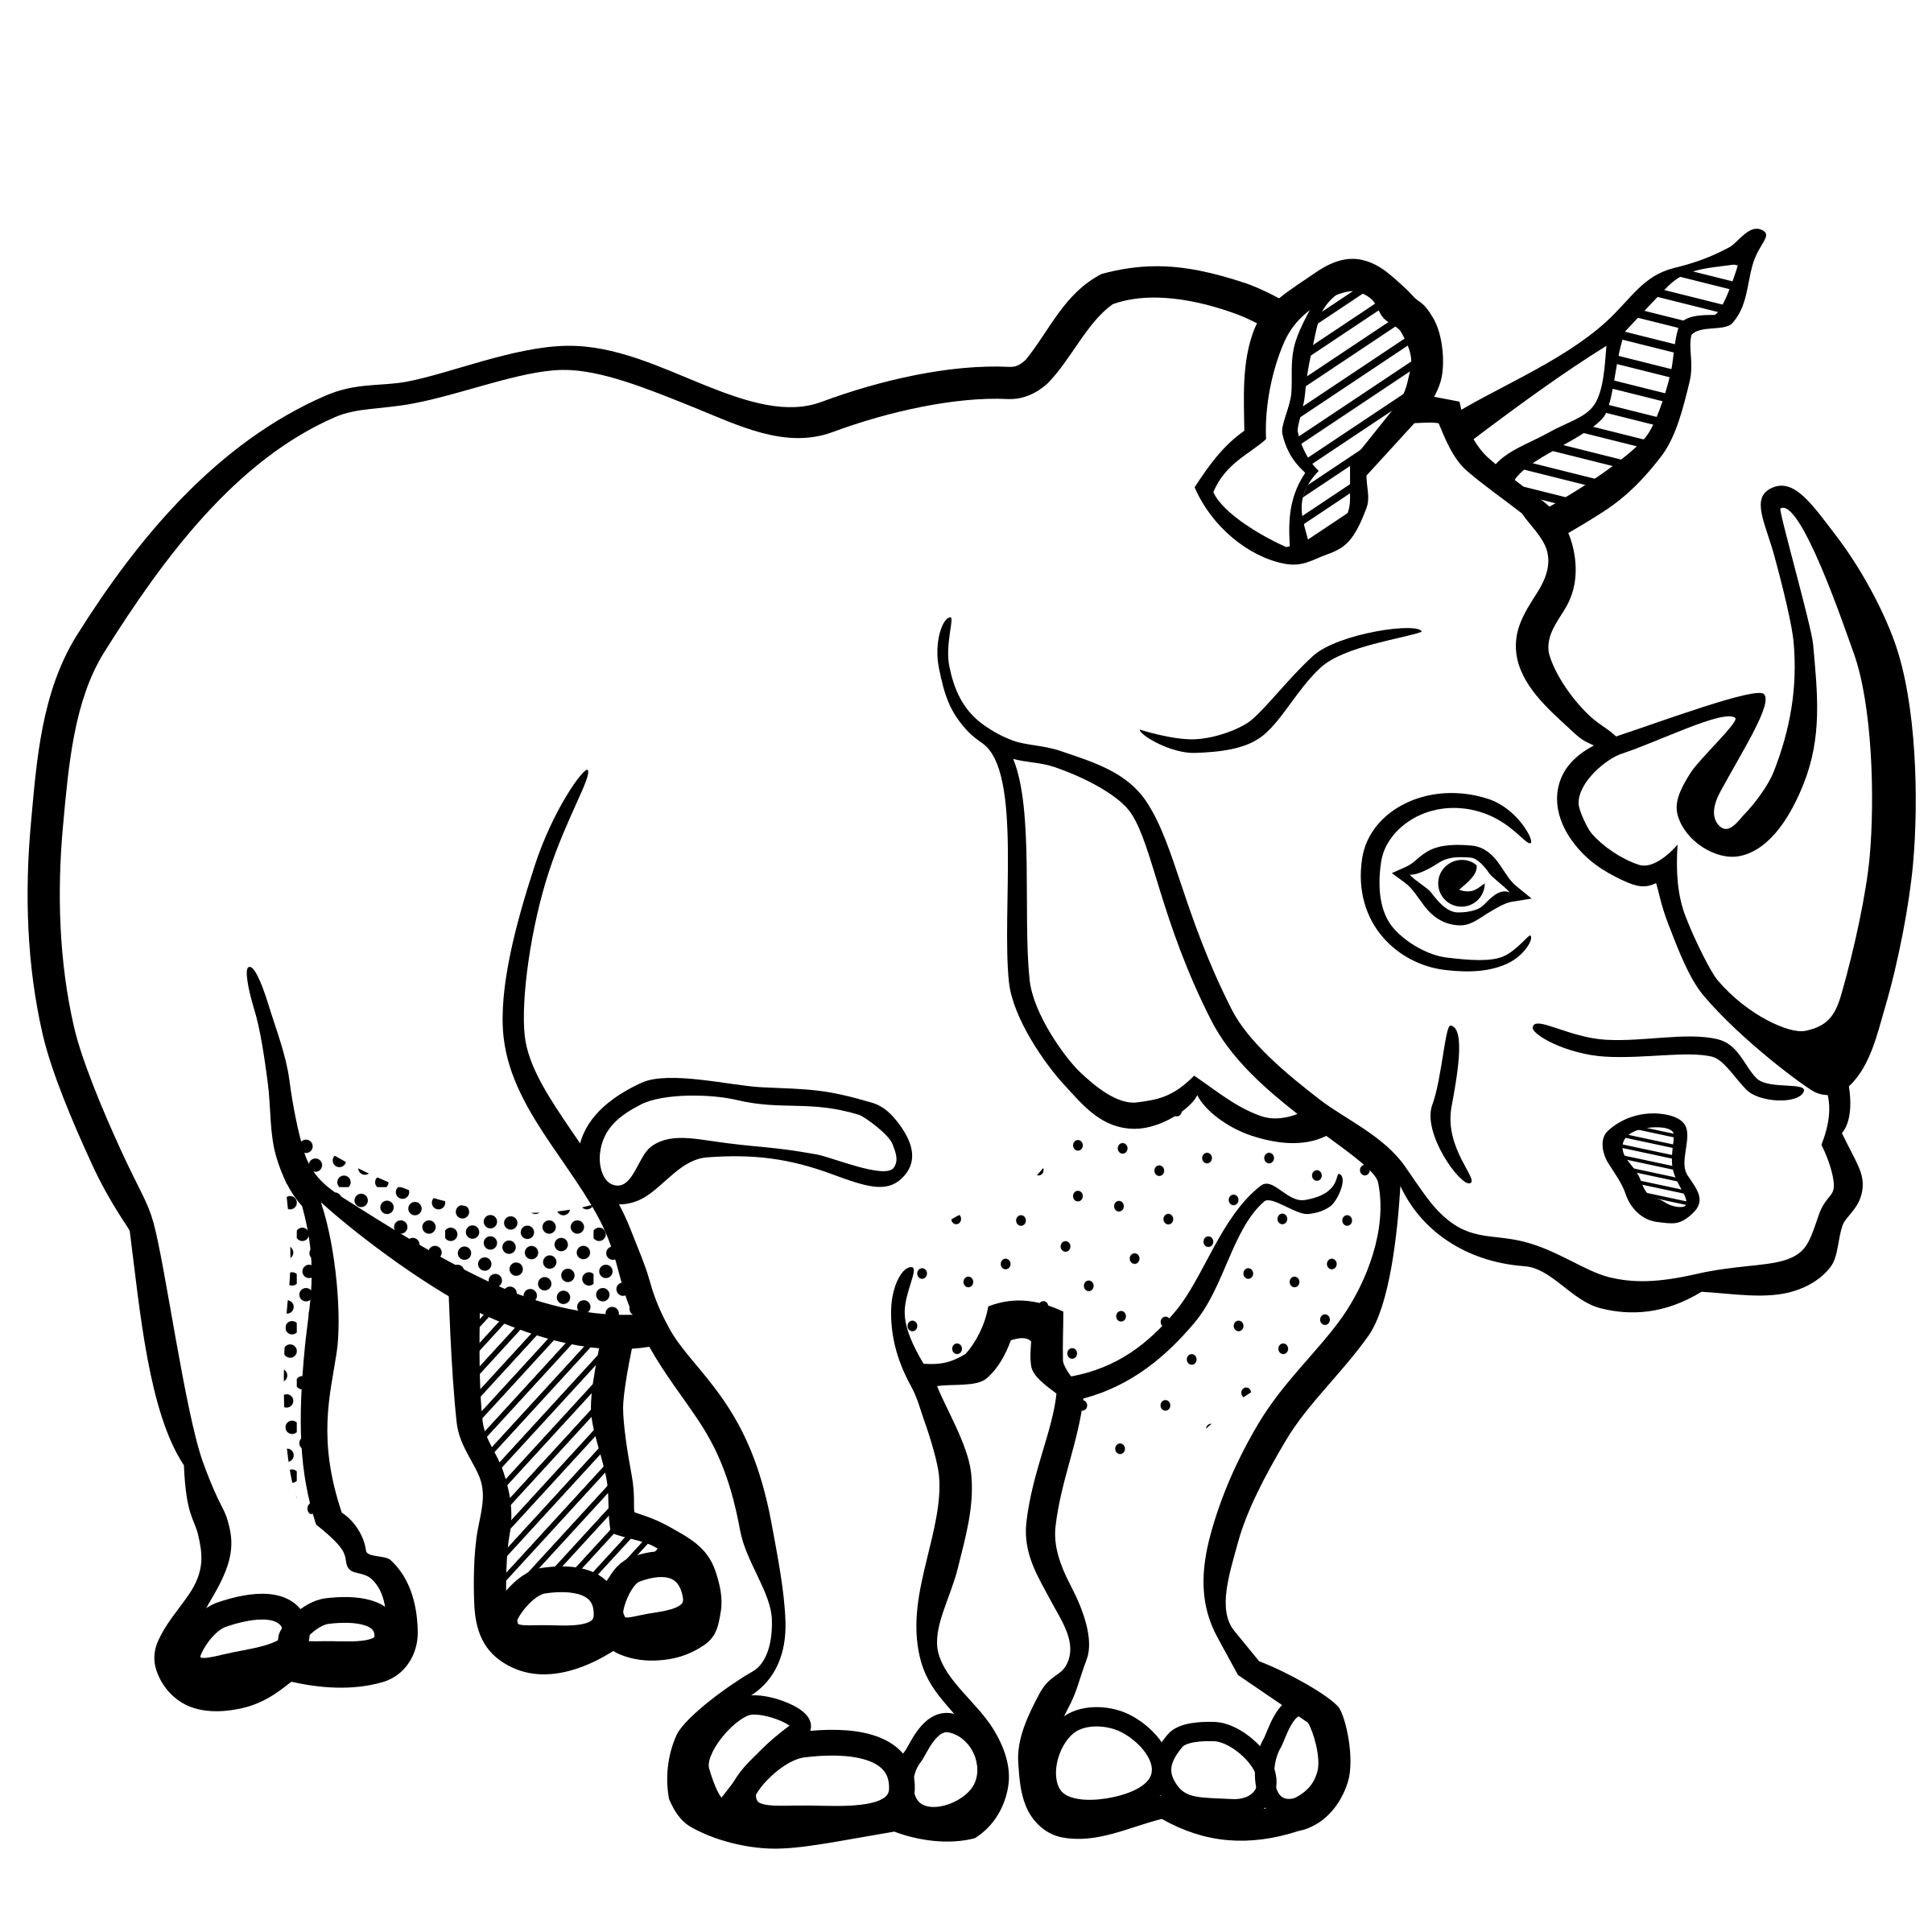 rhino - lineart by frankes